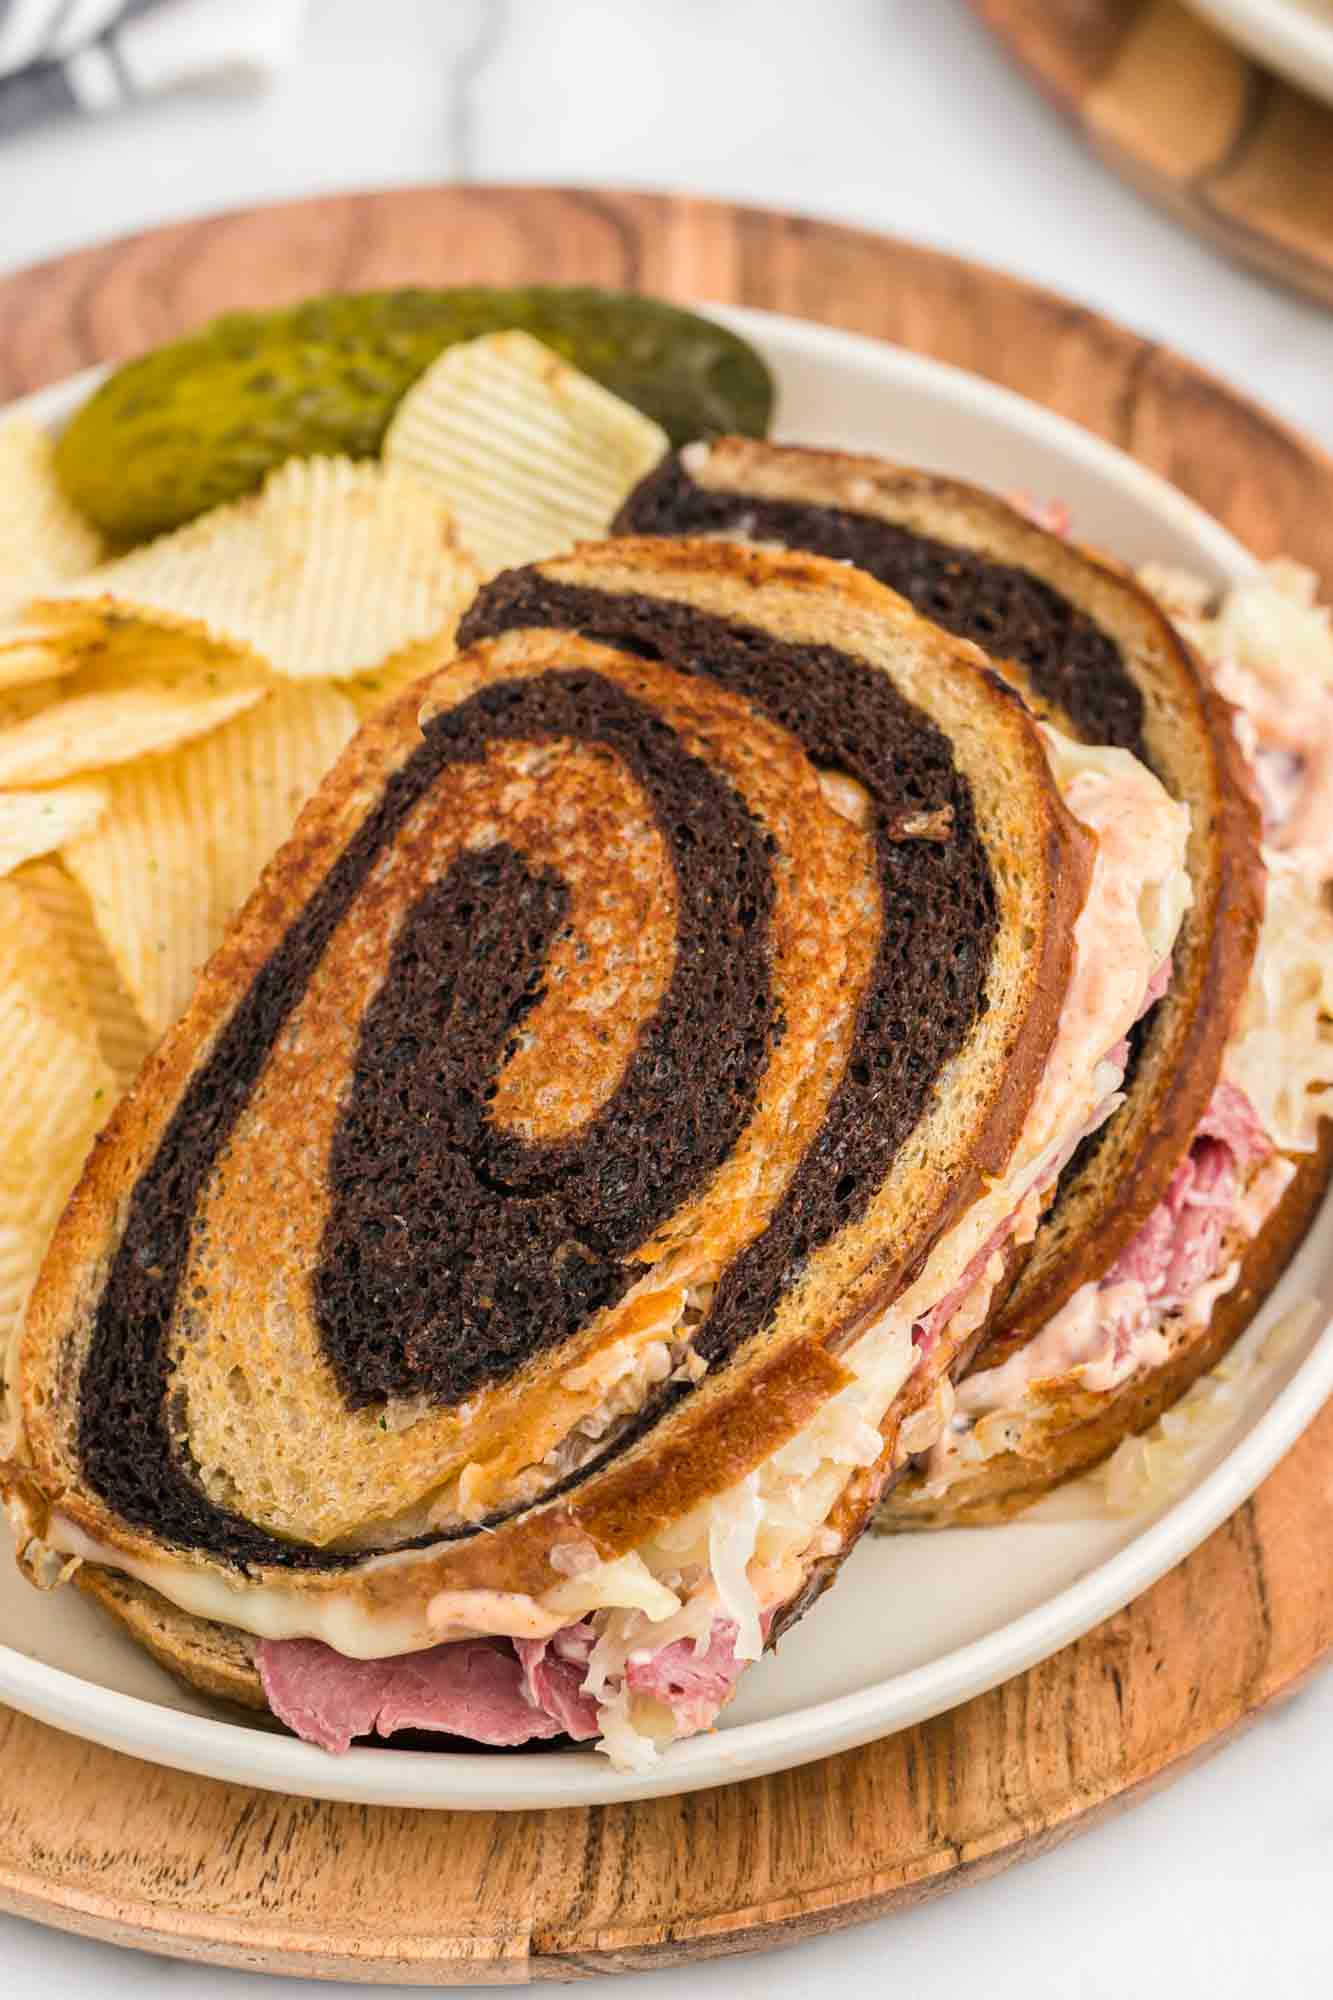 Overhead shot of reuben sandwiches made with marbled rye bread served on a white plate with potato chips and pickle spears